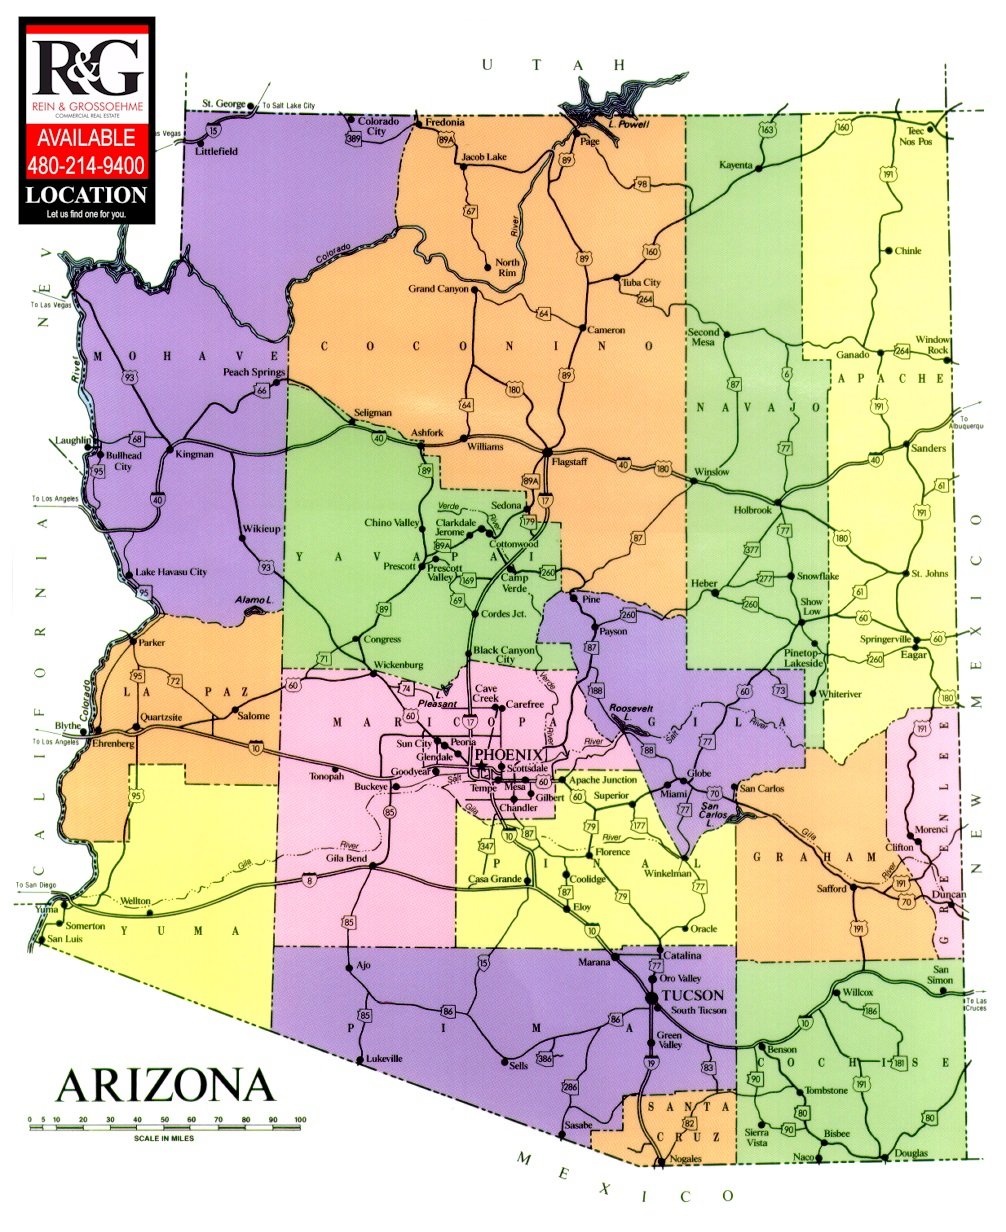 State Of Arizona Map REIN GROSSOEHME Commercial Real Estate - State of arizona map